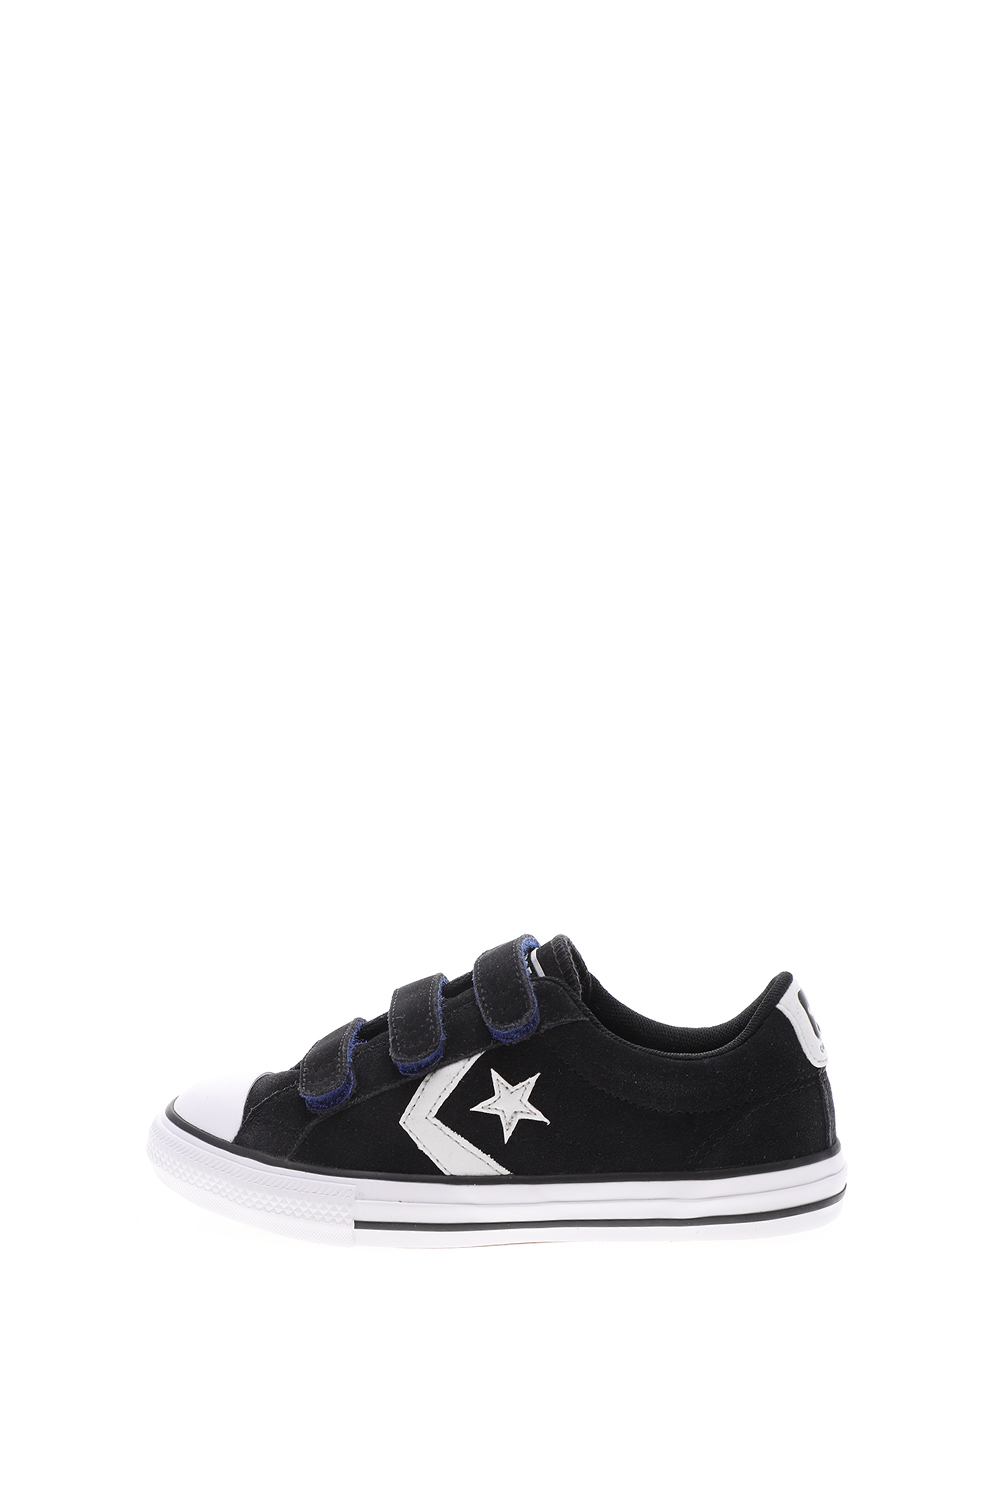 CONVERSE – Παιδικά sneakers CONVERSE STAR PLAYER 3V ΥΠΟΔΗΜΑ μαύρα